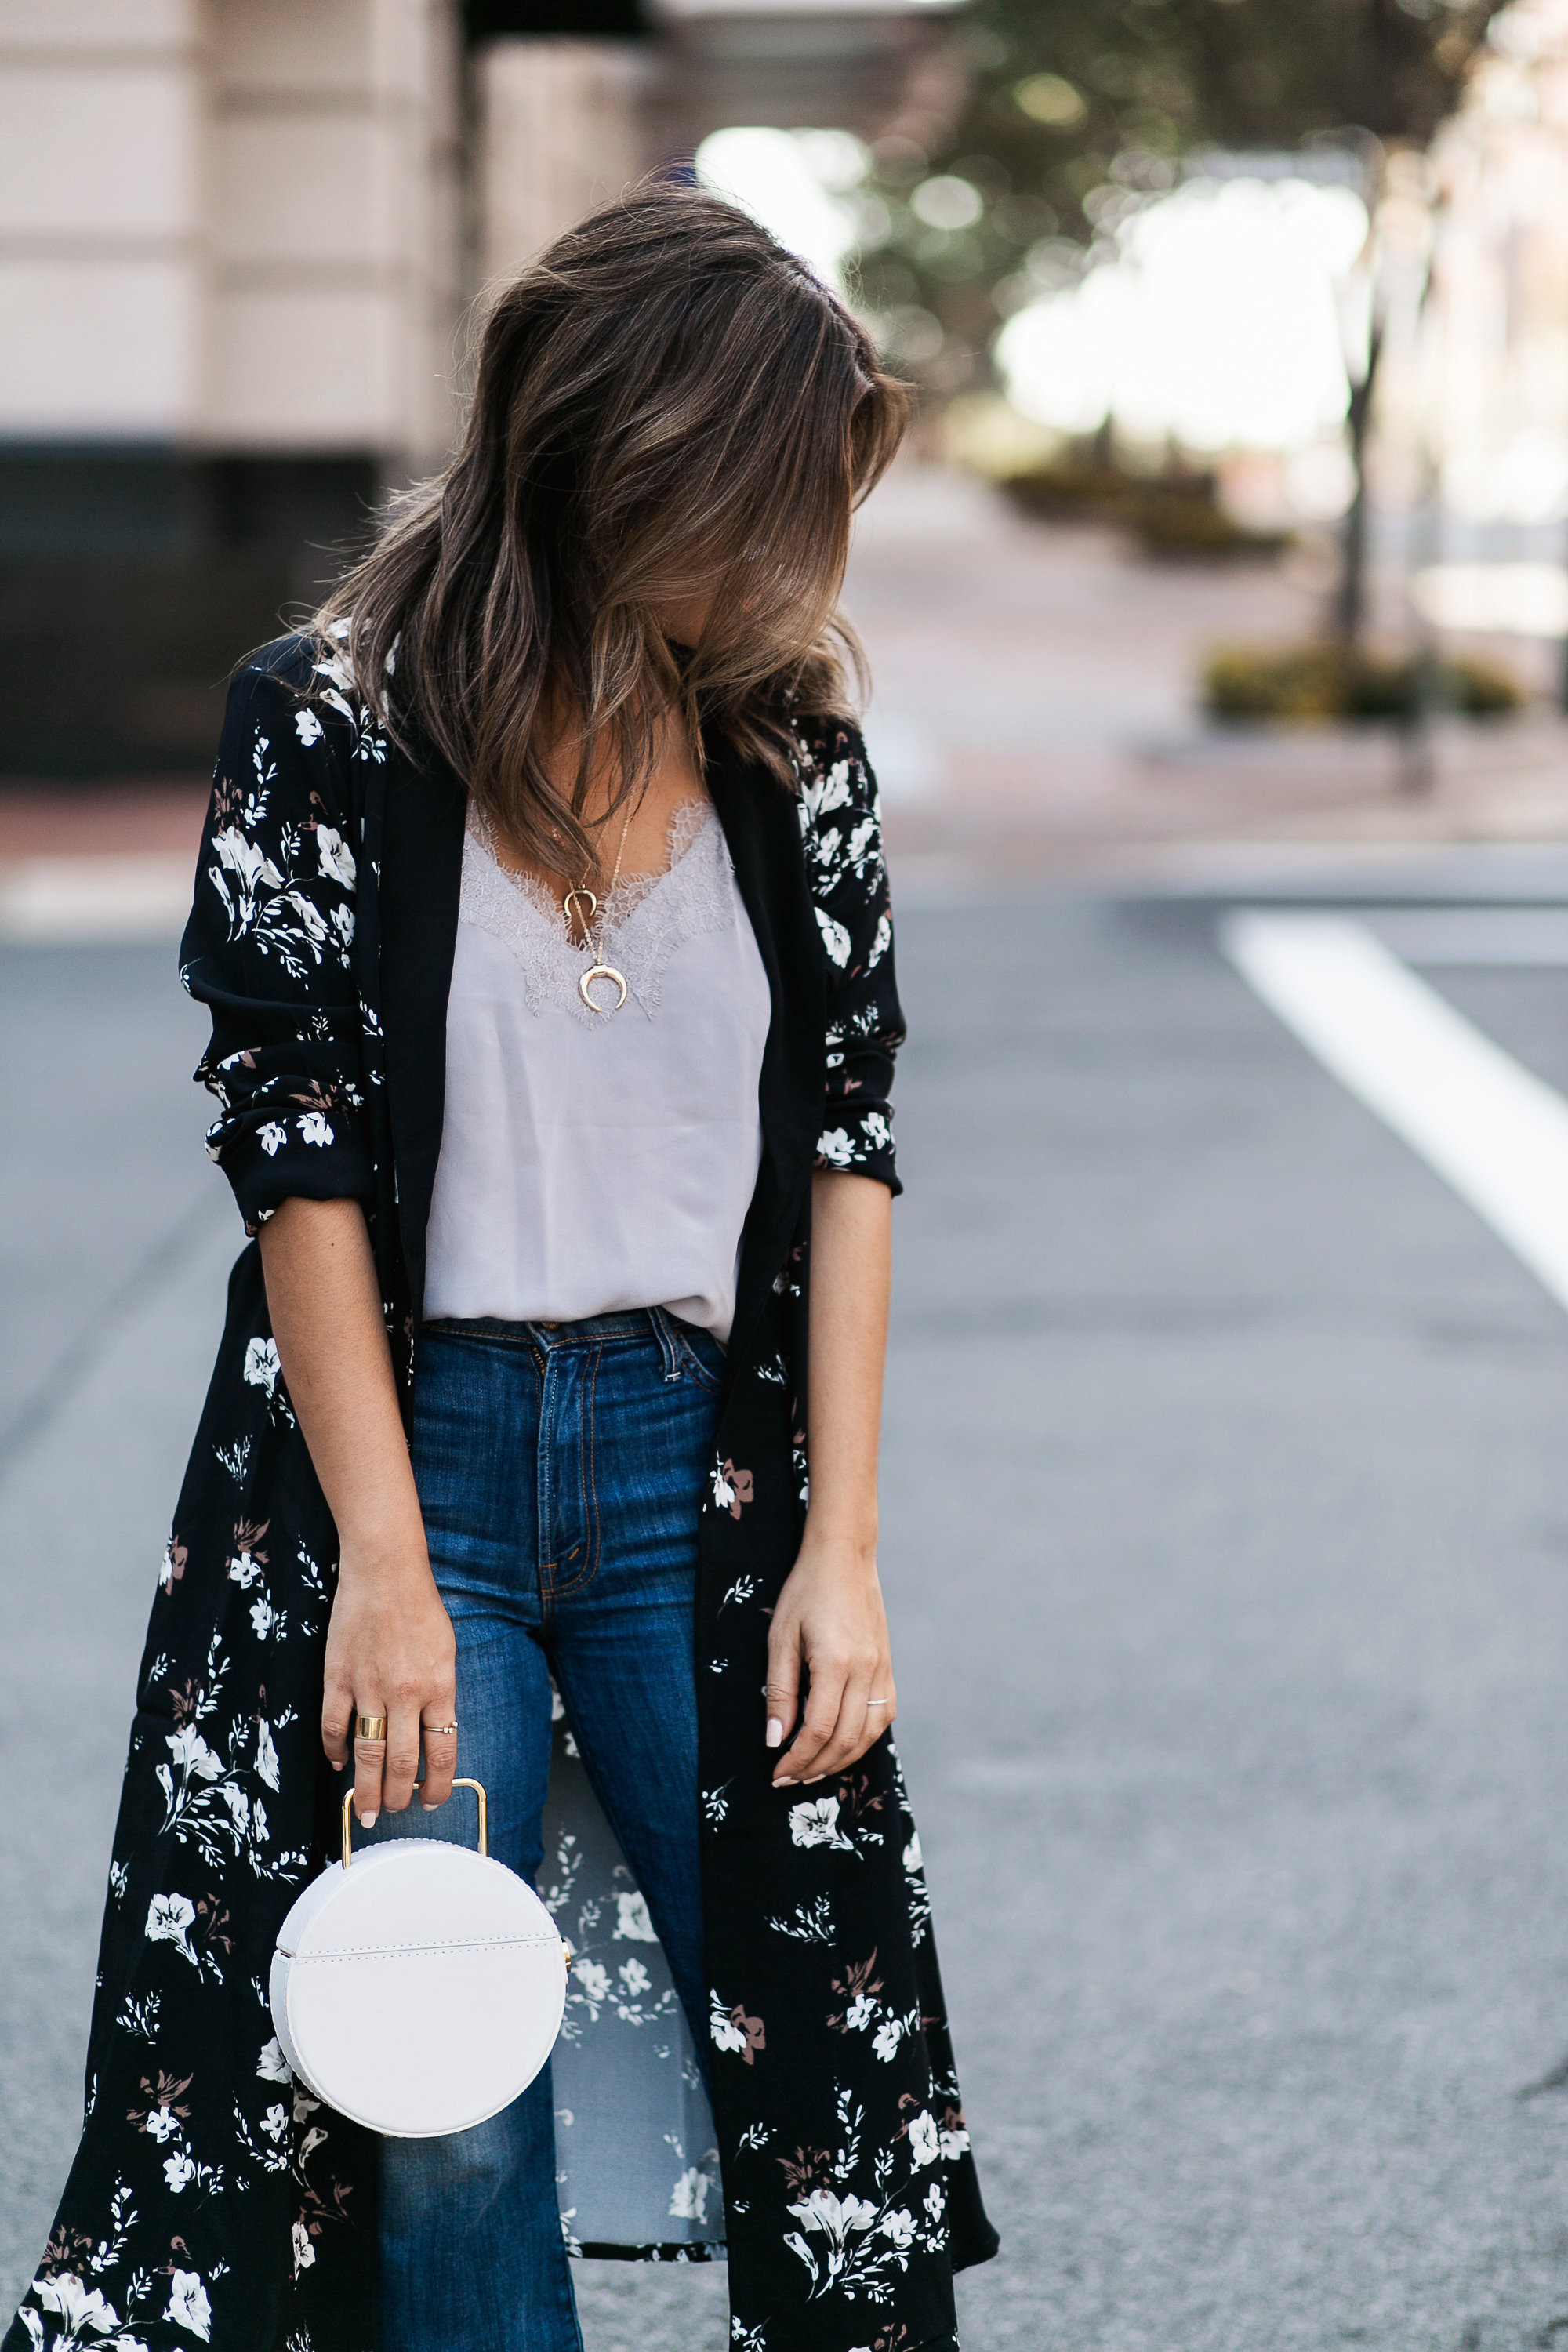 Style MBA Wears L'Academie x Revolve Floral Robe and Mother Denim